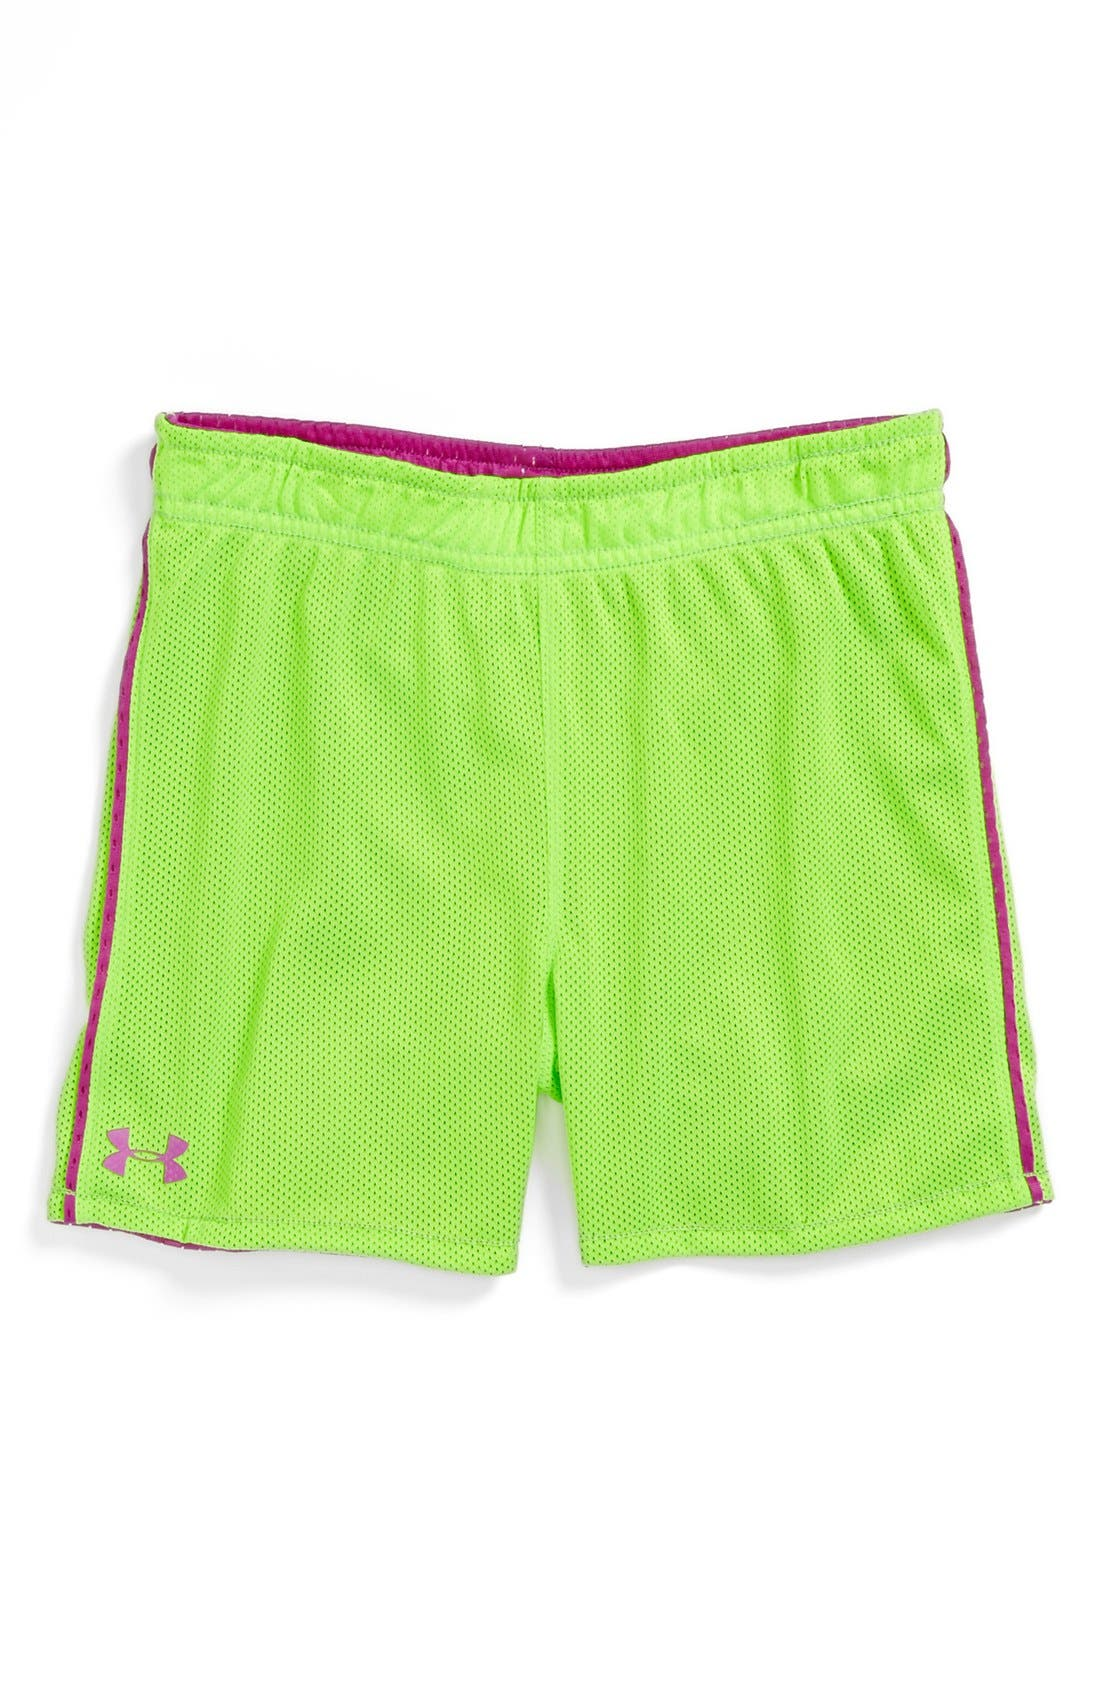 Alternate Image 1 Selected - Under Armour Reversible Mesh Shorts (Little Girls)